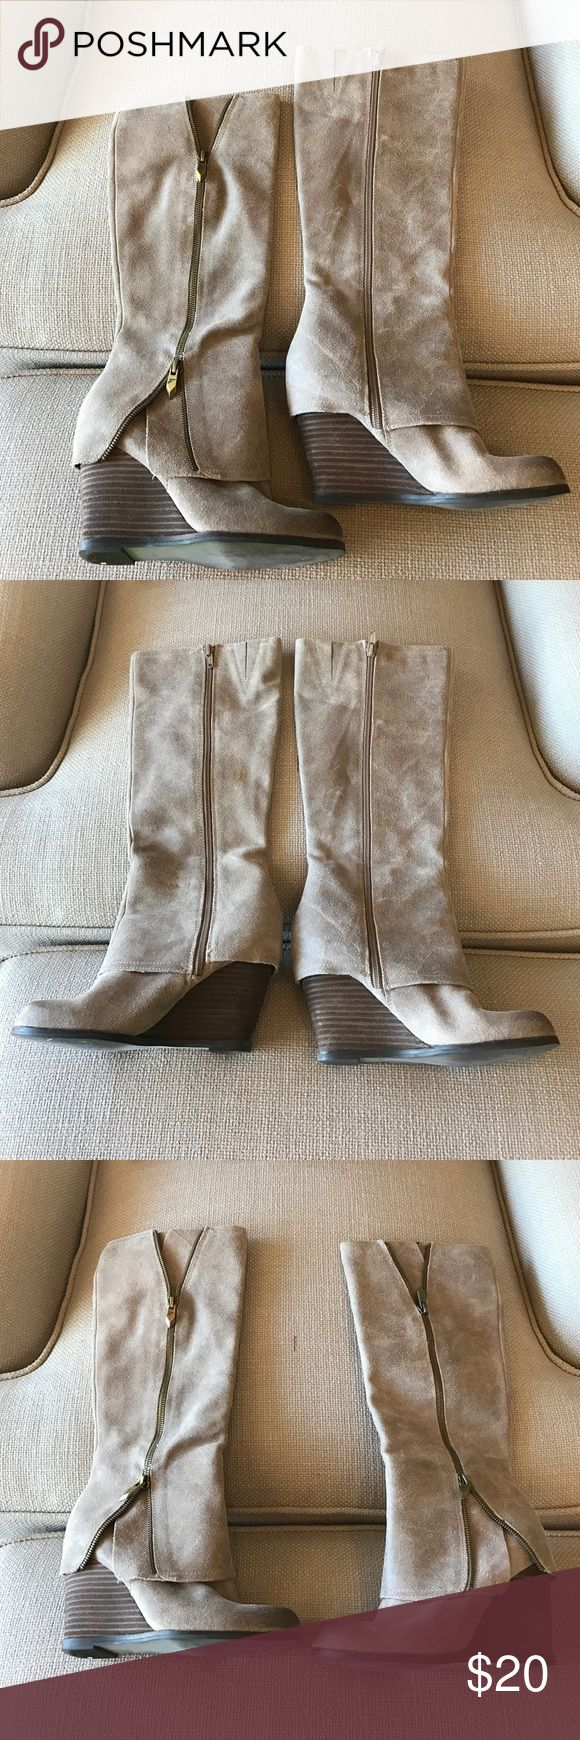 Fergie boots size 6.5 Color is a little tough to explain. Almost between a really light pink and tan. Very cute boots. Worn several times but still in very good condition. Fergie Shoes Wedges